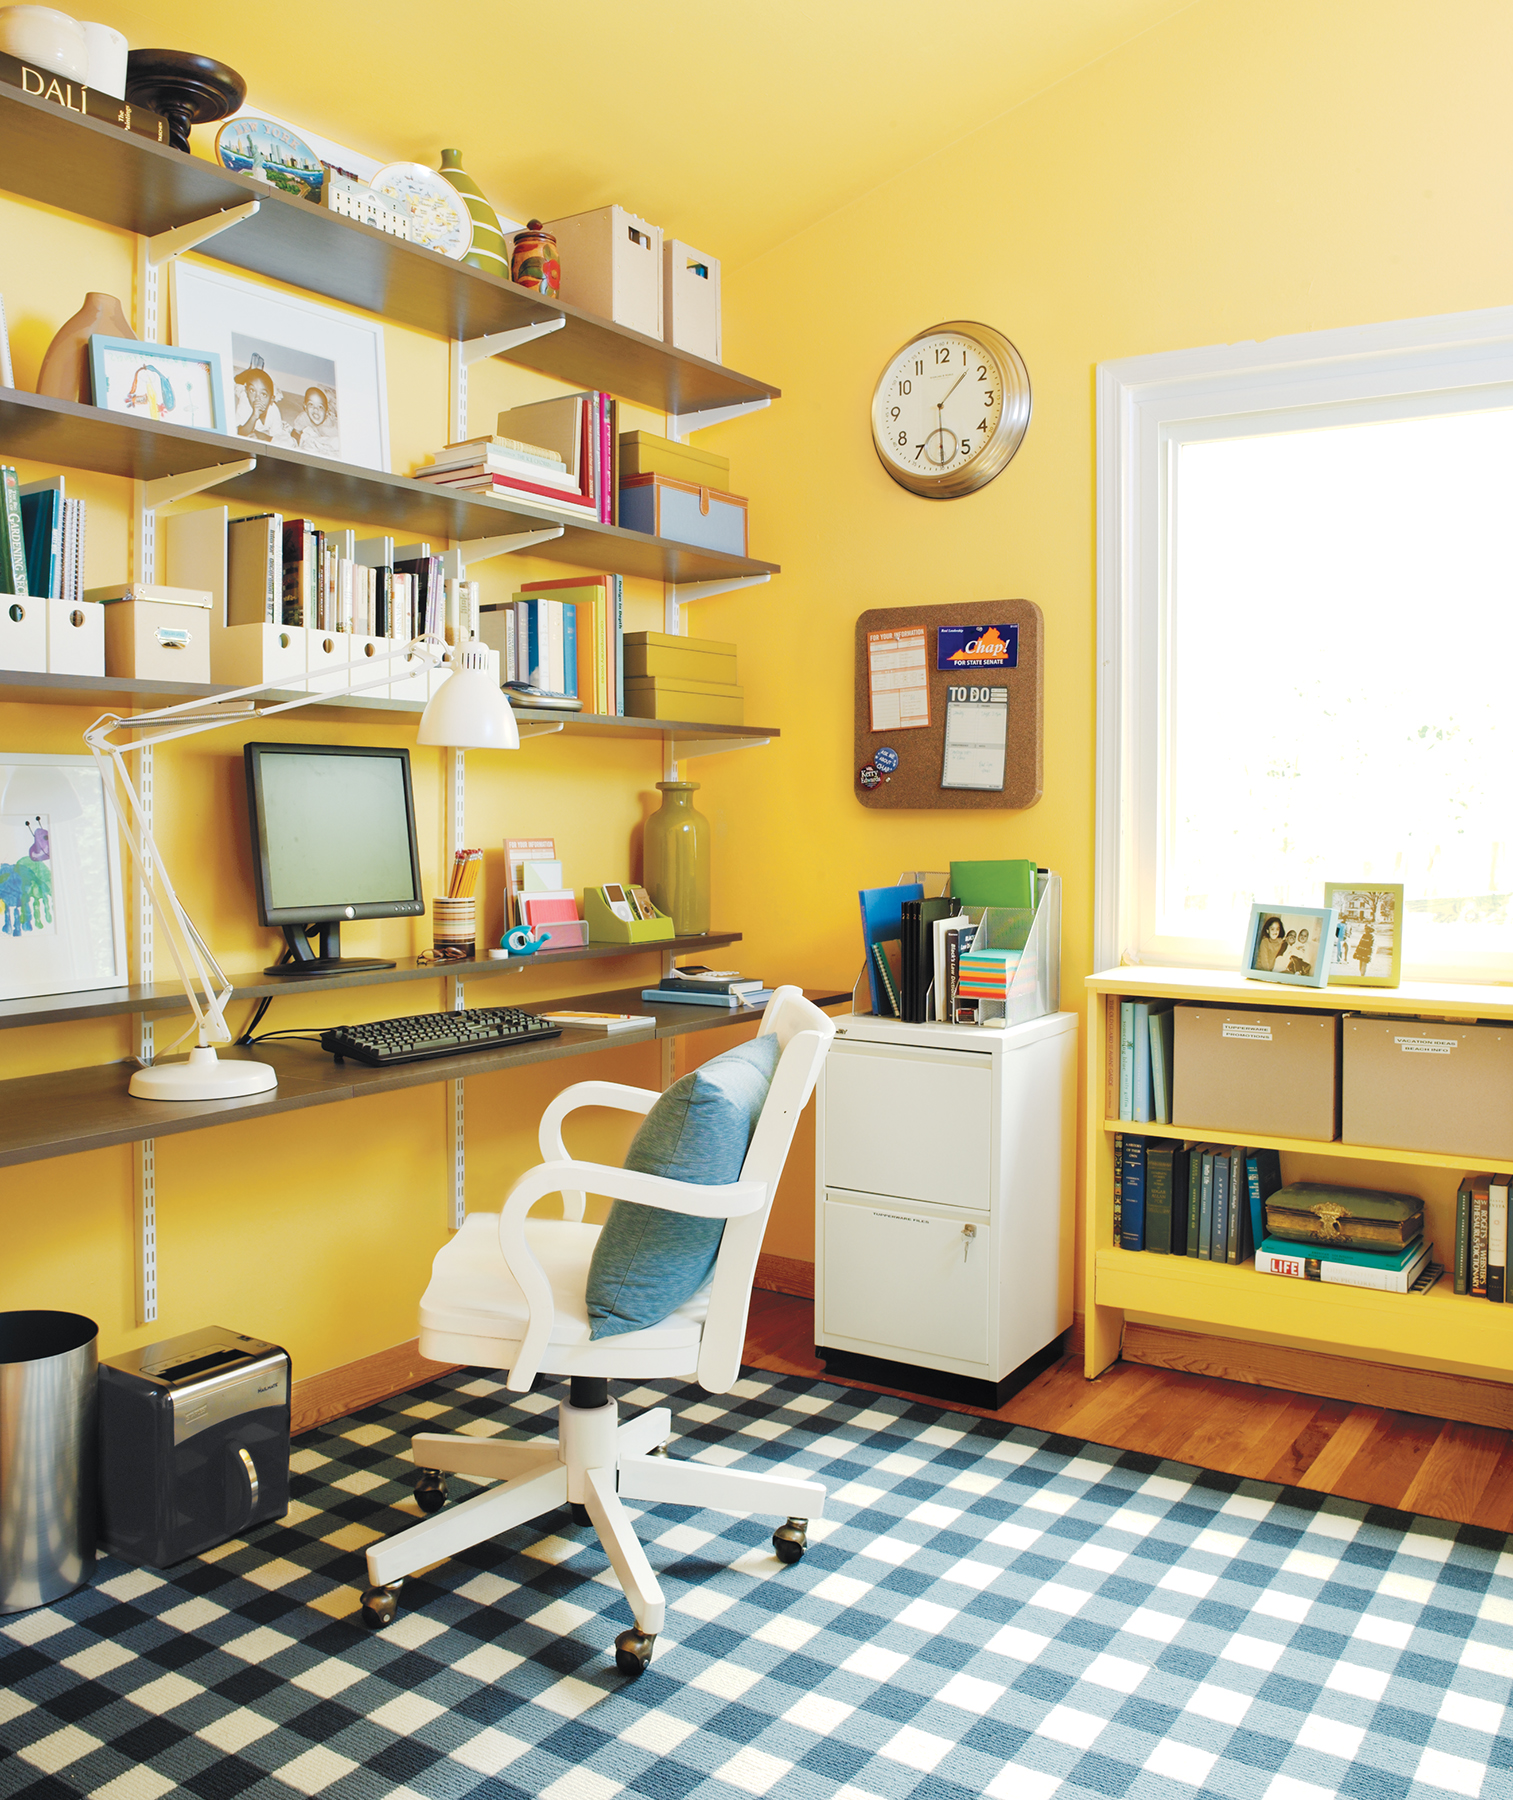 Home Office Design Tips To Stay Healthy: Get Organized With These Home Makeover Ideas